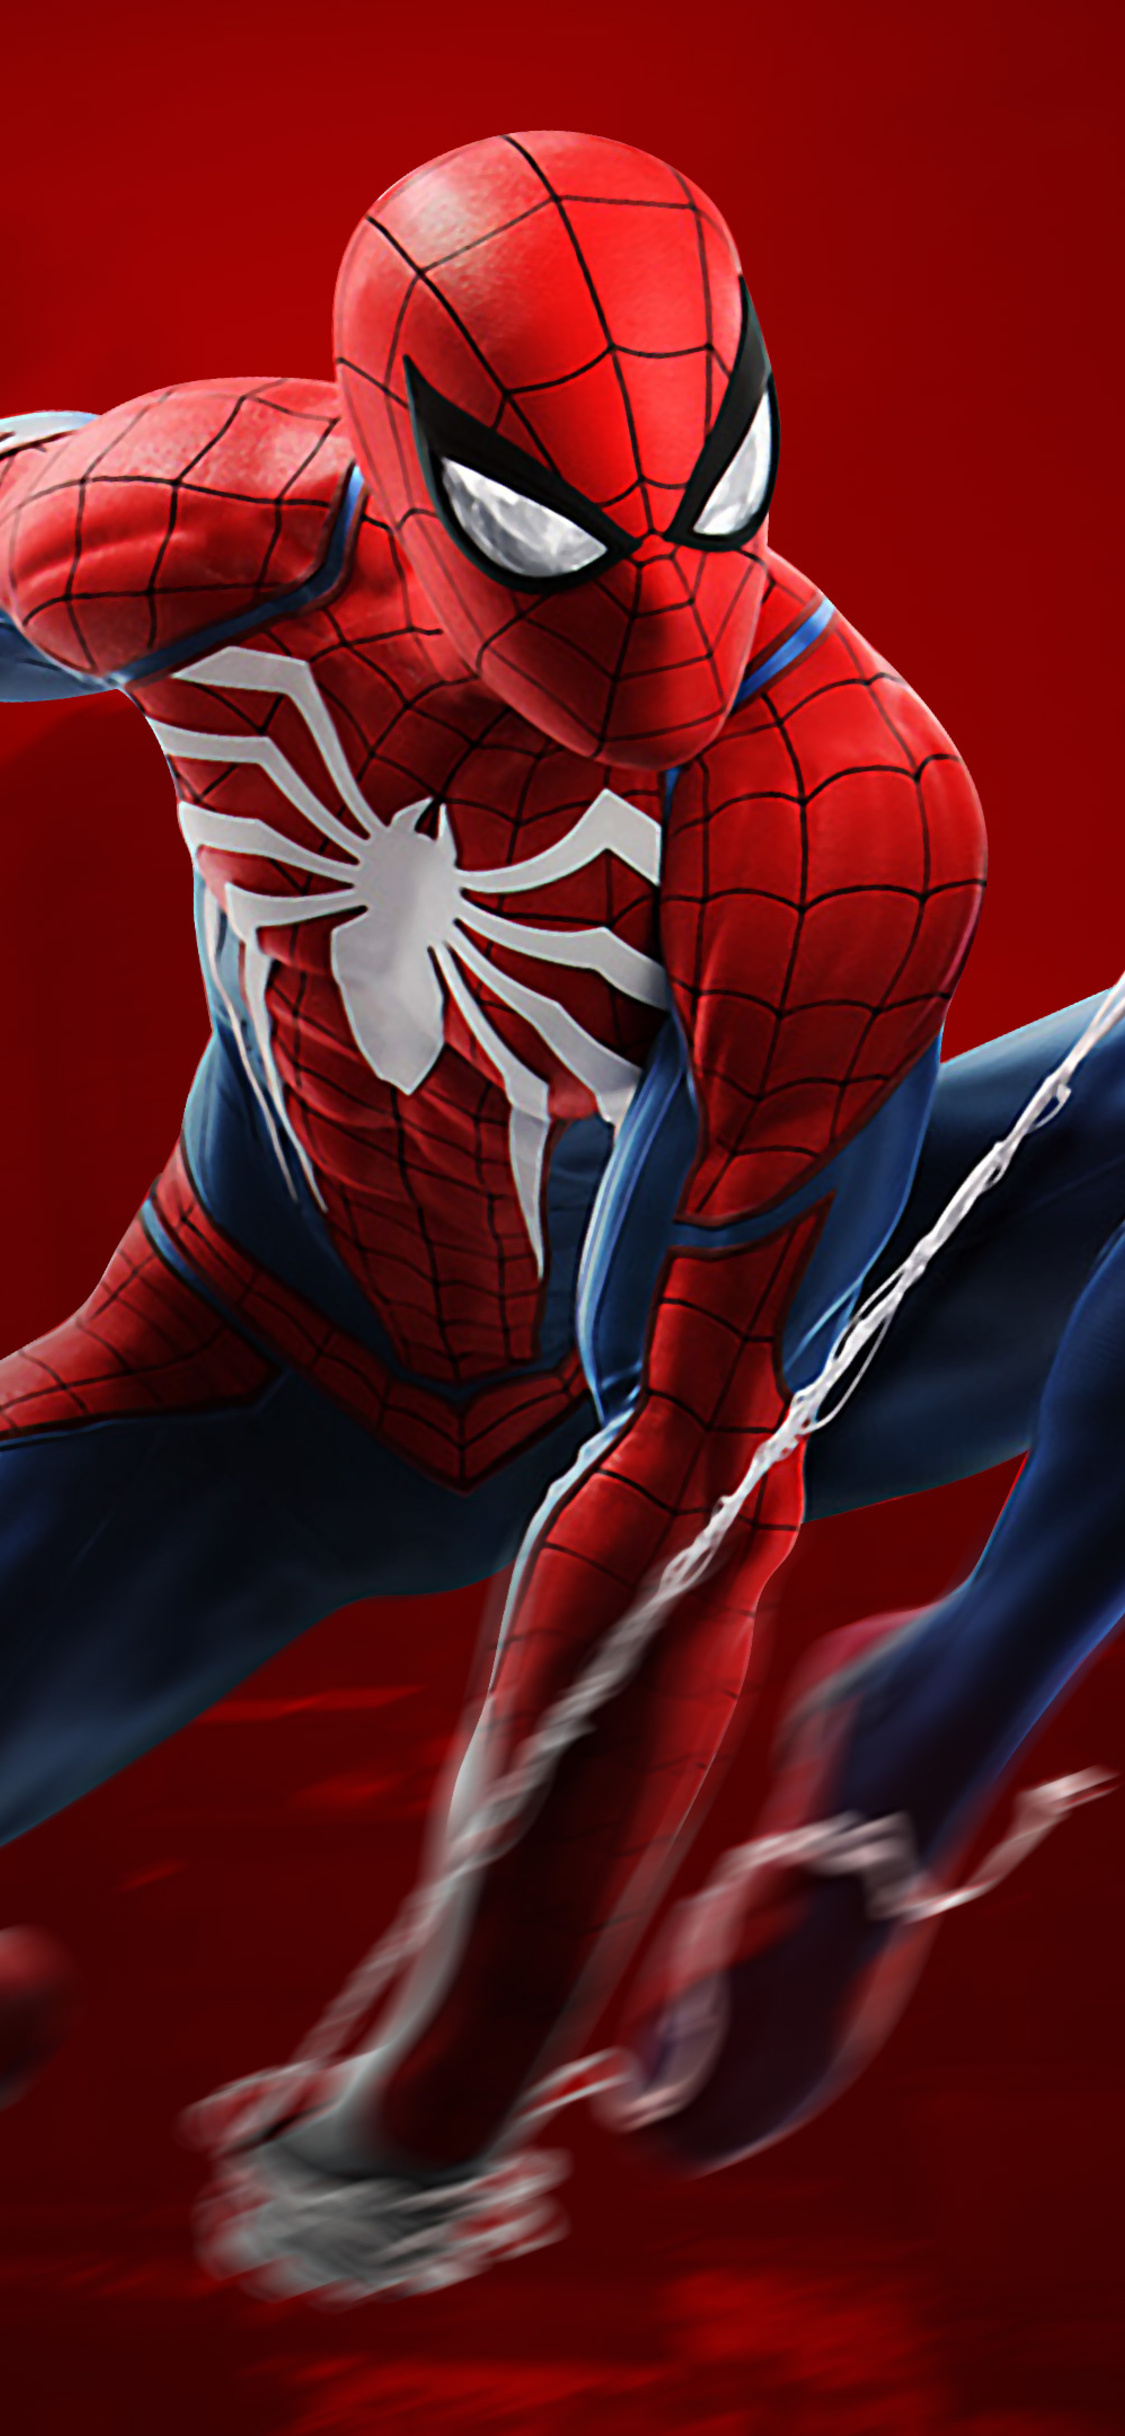 1125x2436 spiderman ps4 4k iphone xs iphone 10 iphone x hd - Iphone 6 spiderman wallpaper ...